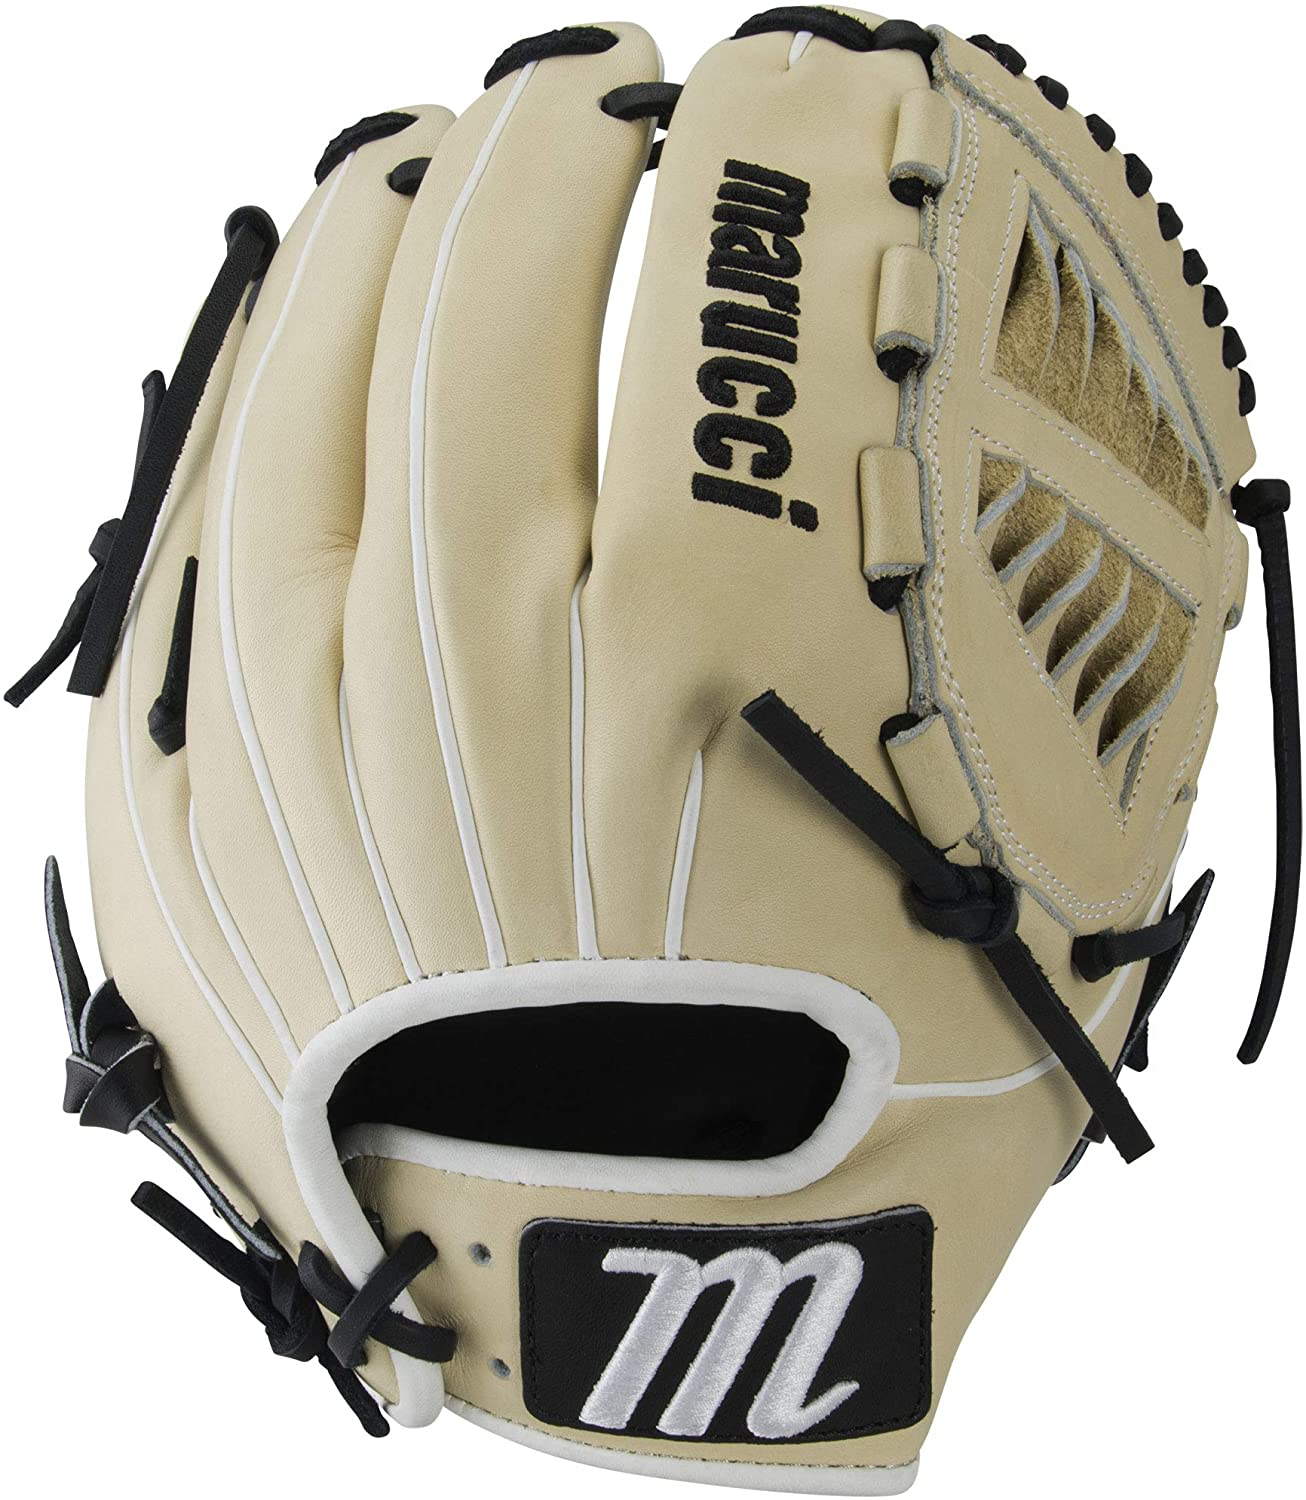 marucci-magnolia-series-12-inch-fastpitch-softball-glove-spiral-web-right-hand-throw MFGMG12FP-CMBK-RightHandThrow Marucci  Premium Japanese-tanned steerhide leather provides stiffness and rugged durability Cushioned leather